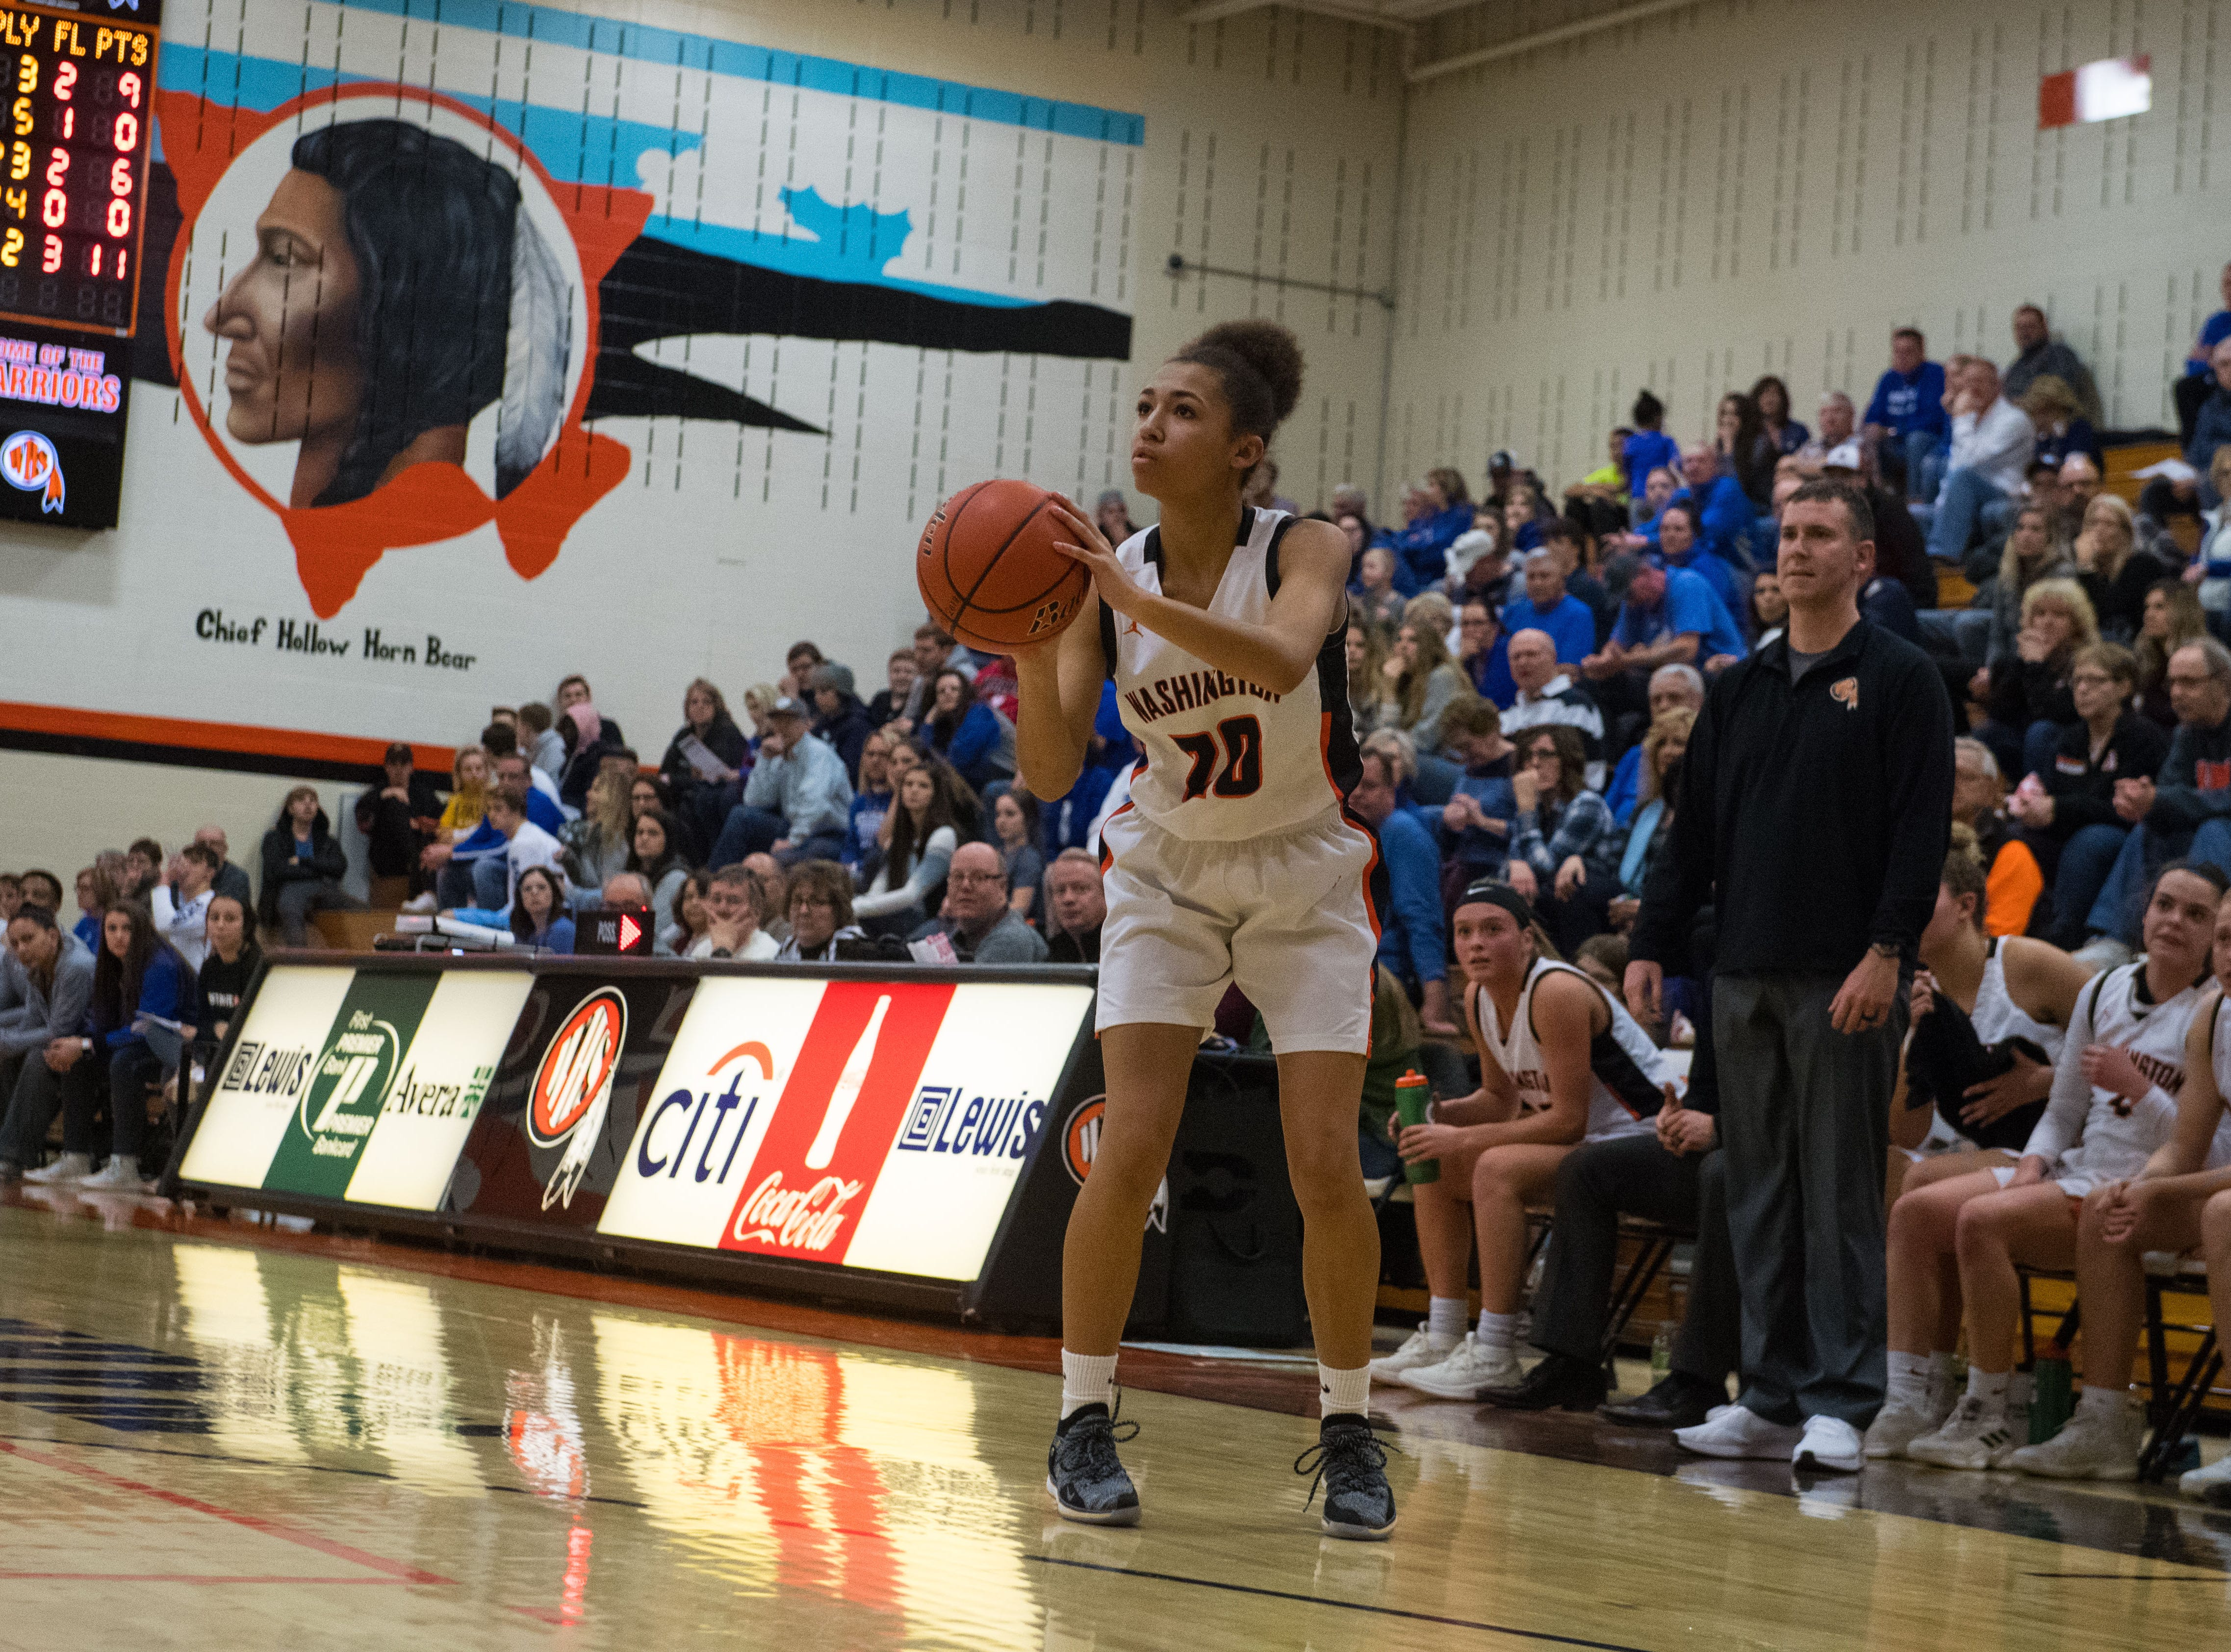 Washington's Brielle Biteler (20) shoots the ball during a game against Rapid City Stevens in Sioux Falls, S.D., Friday, Feb. 8, 2019.